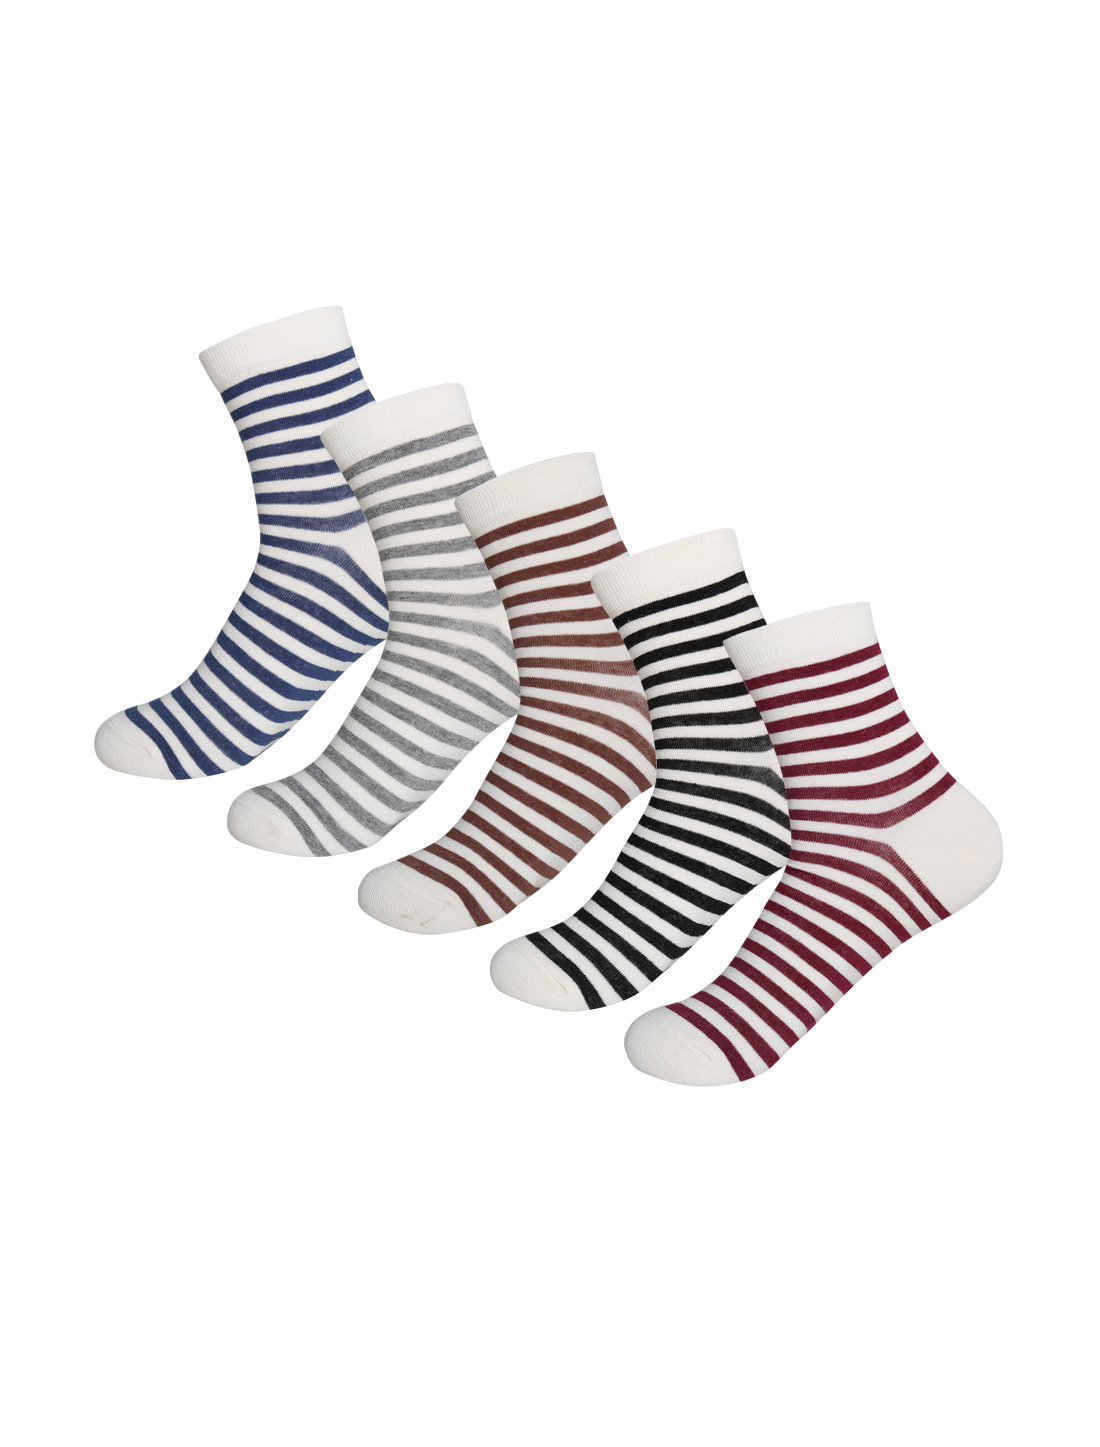 Men 5 Pack Stripes Pattern Thermal Crew Socks 10-12 Assorted-Stripes